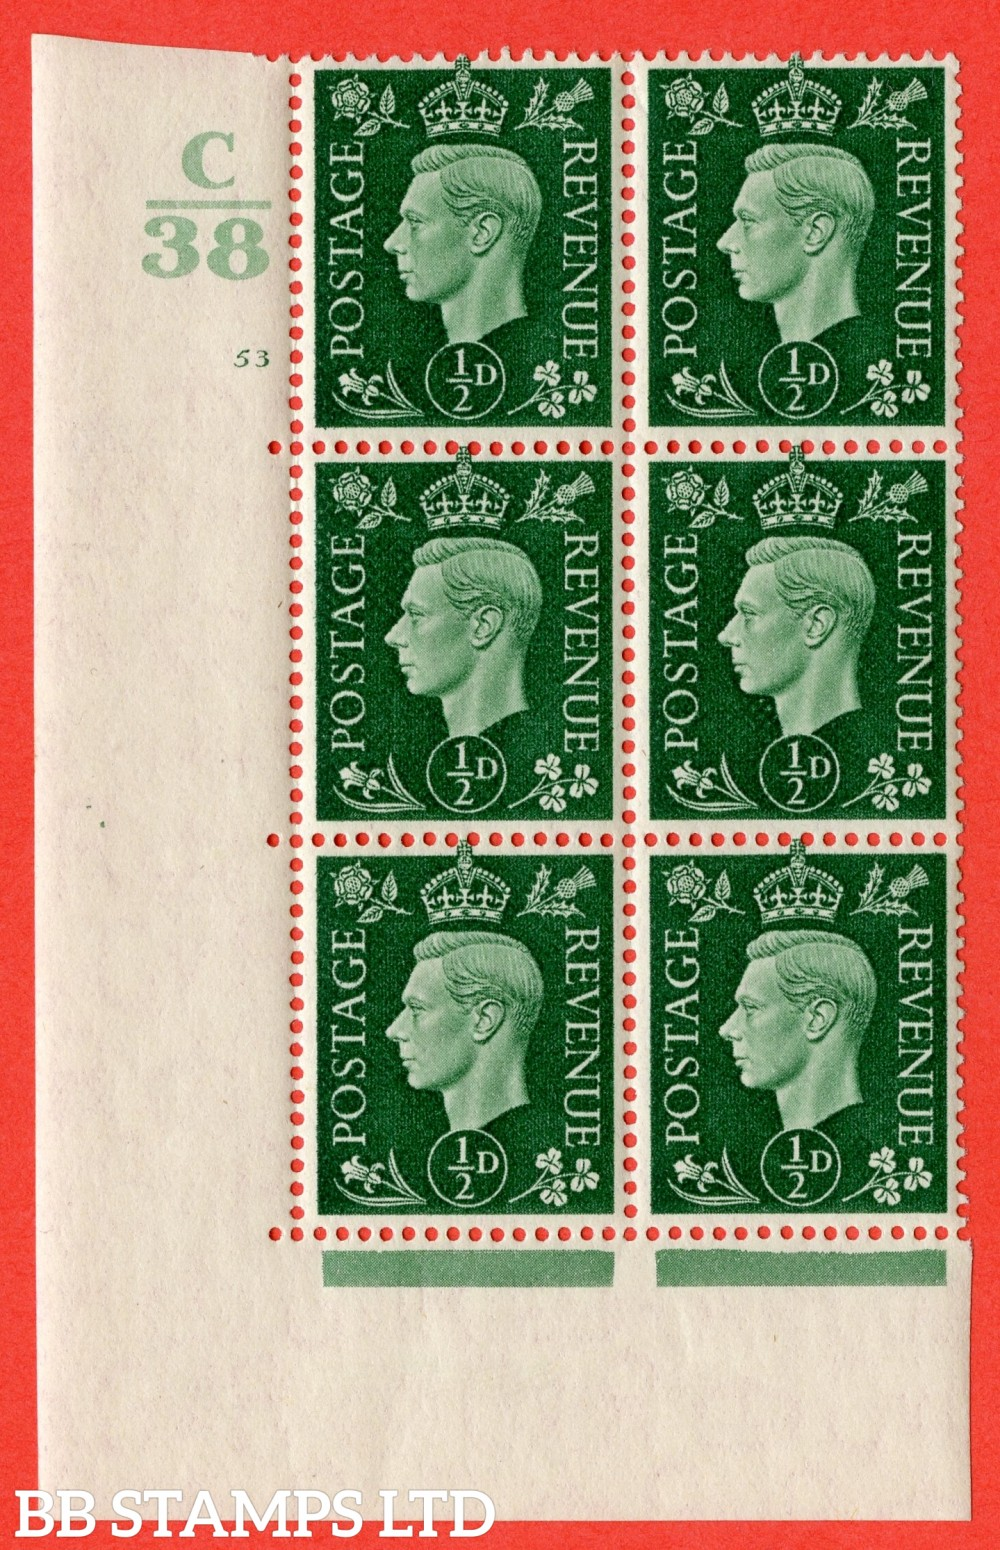 """SG. 462. Q1. ½d Green. A superb UNMOUNTED MINT """" Control C38 cylinder 53 no dot """" block of 6 with perf type 5 E/I with marginal rule."""